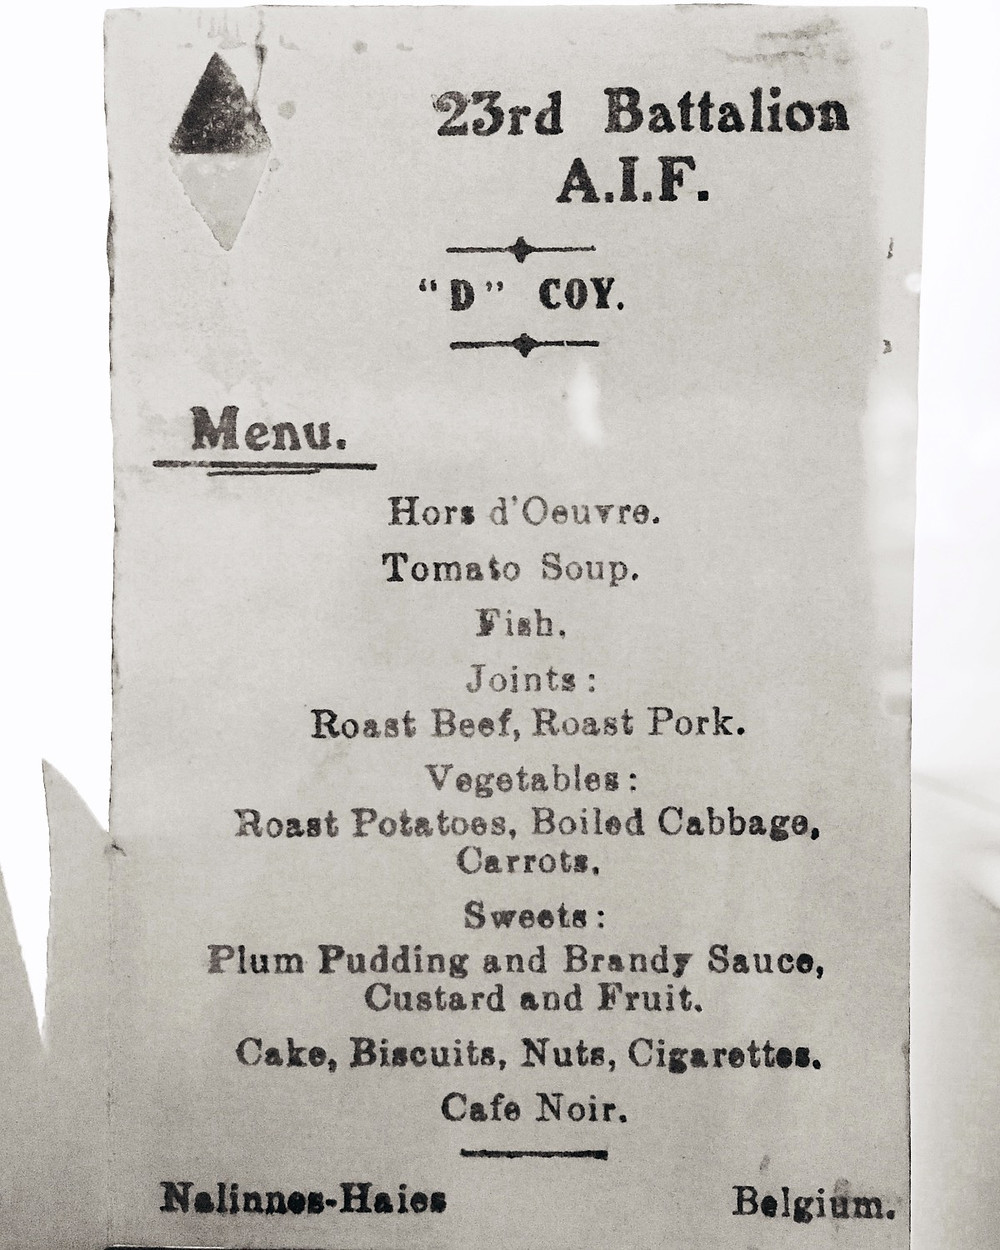 23rd Battalion AIF 1918 Christmas function menu